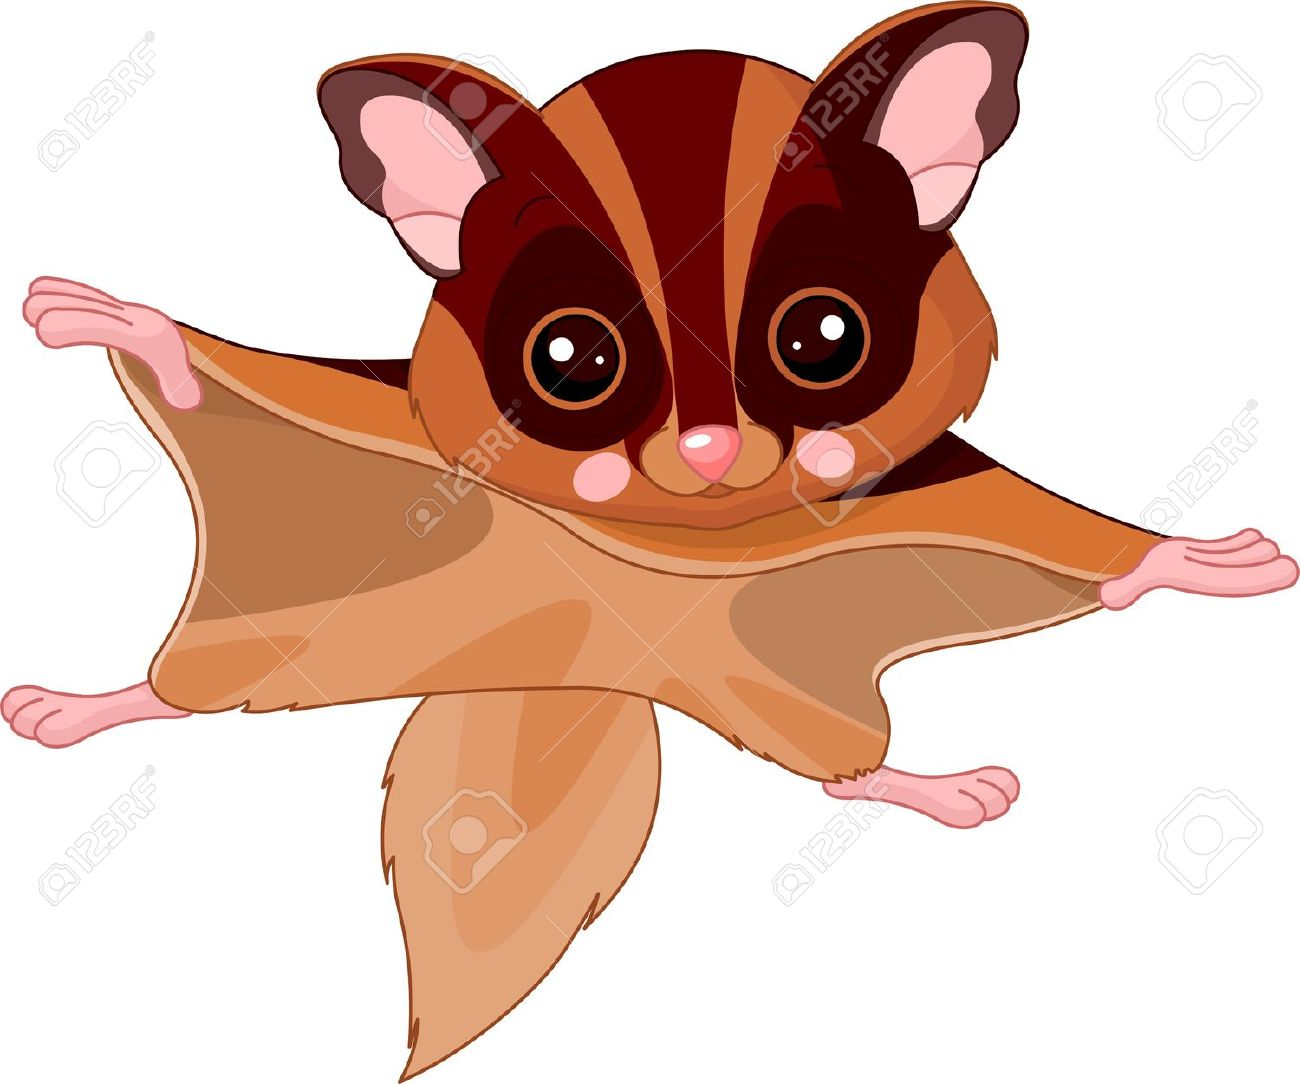 The Japanese Dwarf Flying Squirrel clipart #5, Download drawings